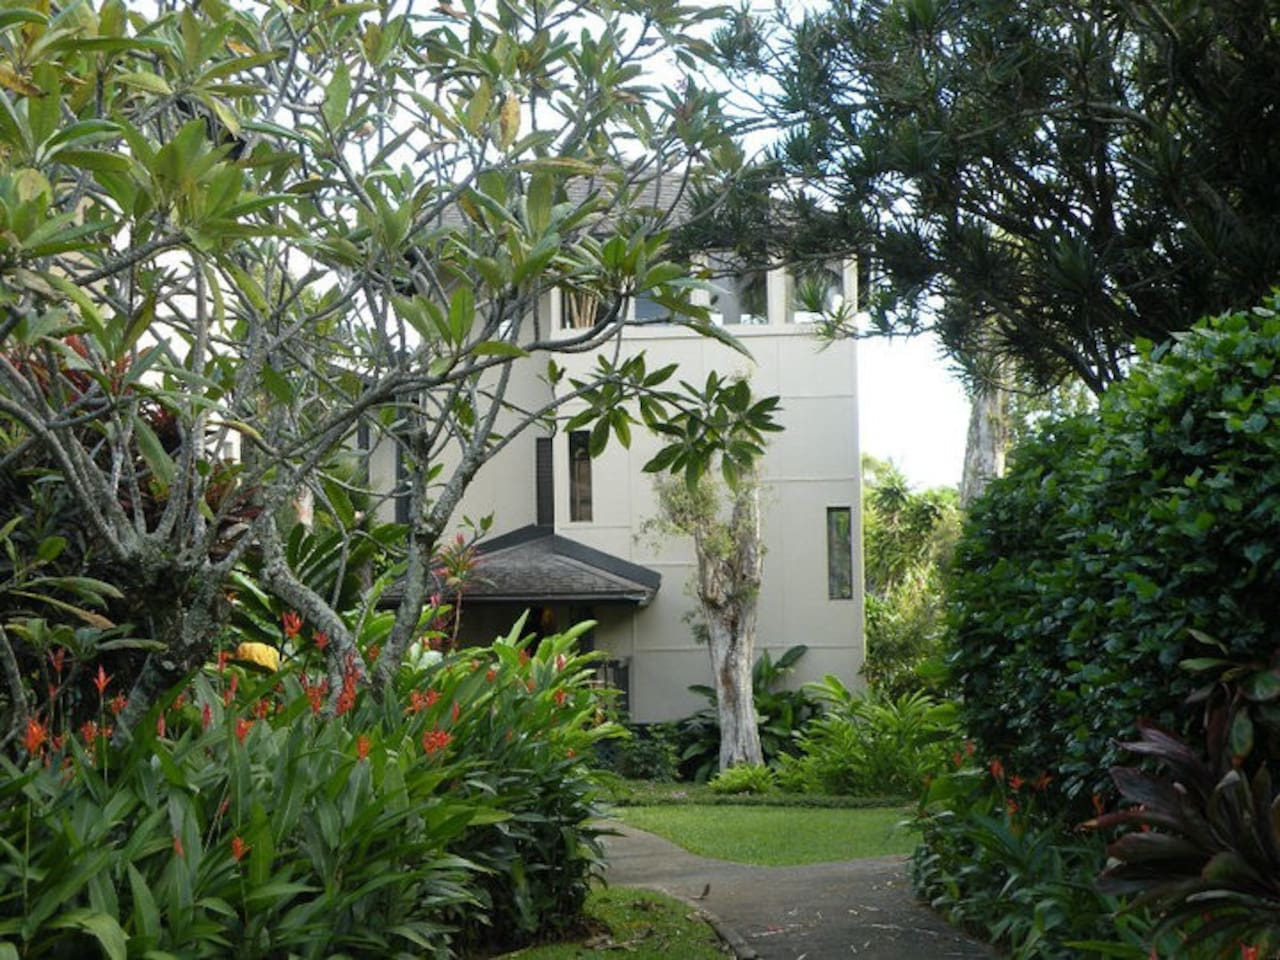 Mature tropical gardens surround the property